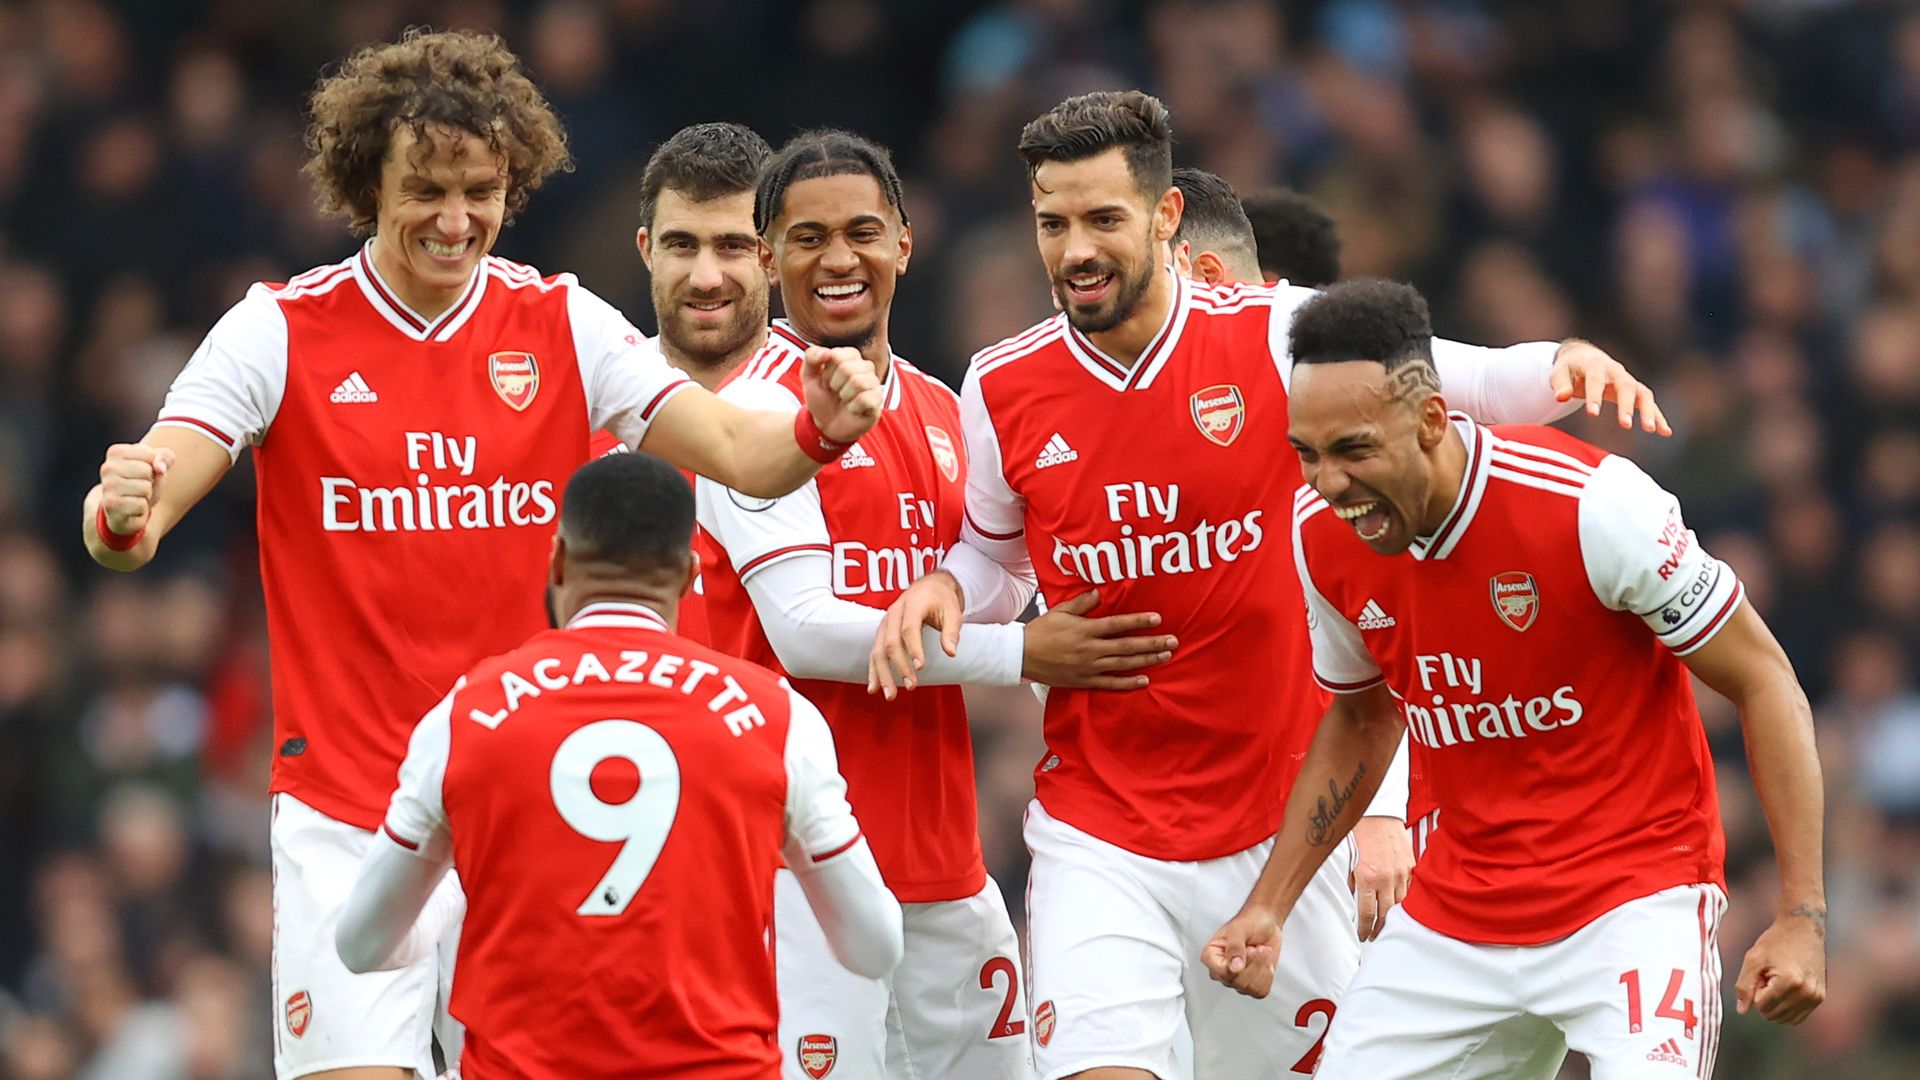 Arsenal players impress with GPS fitness